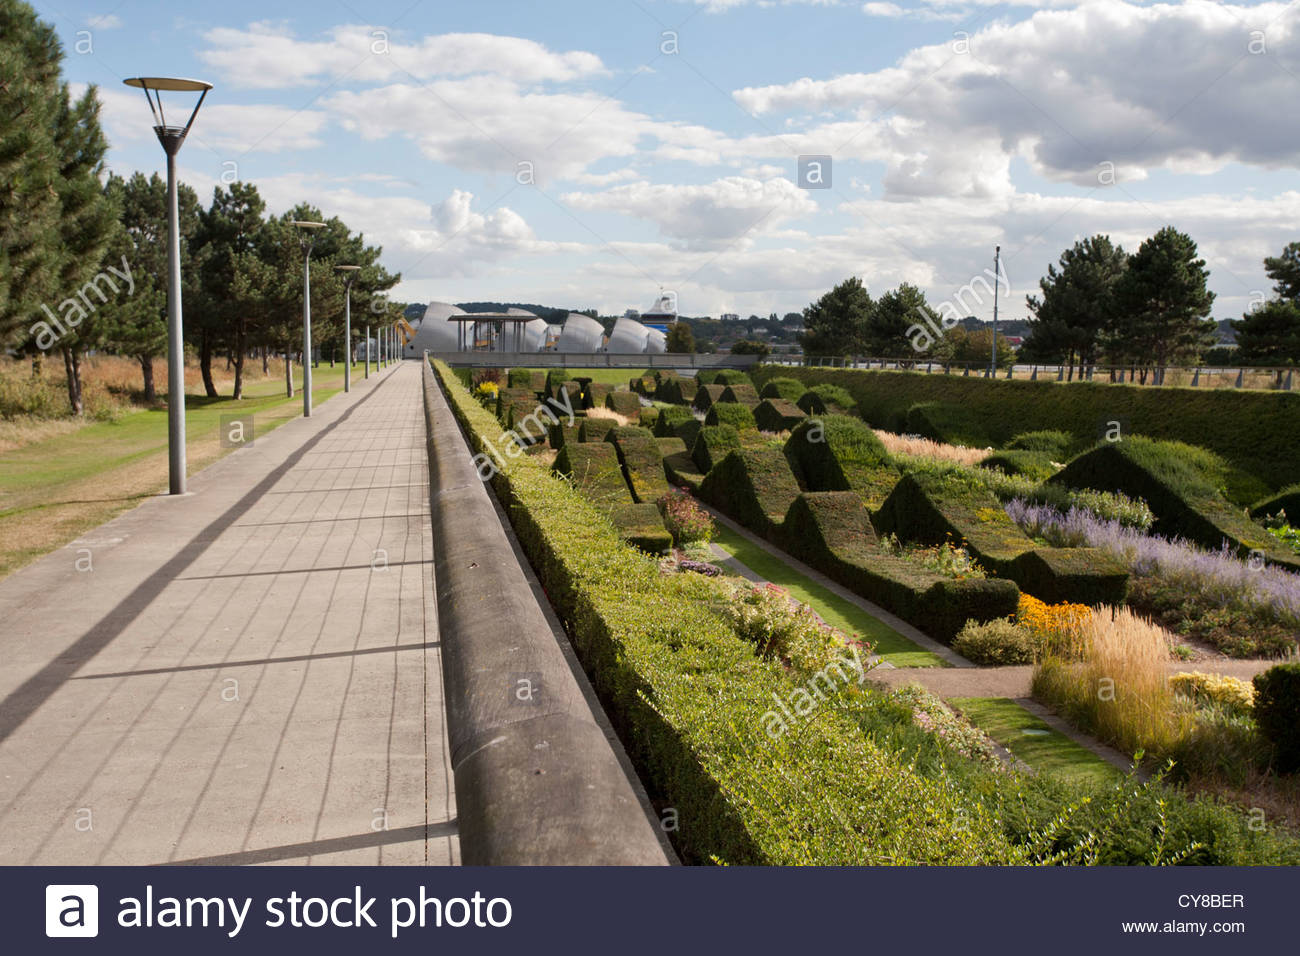 The Thames Flood Barrier seen from Thames Barrier Park, Silvertown, London - Stock Image